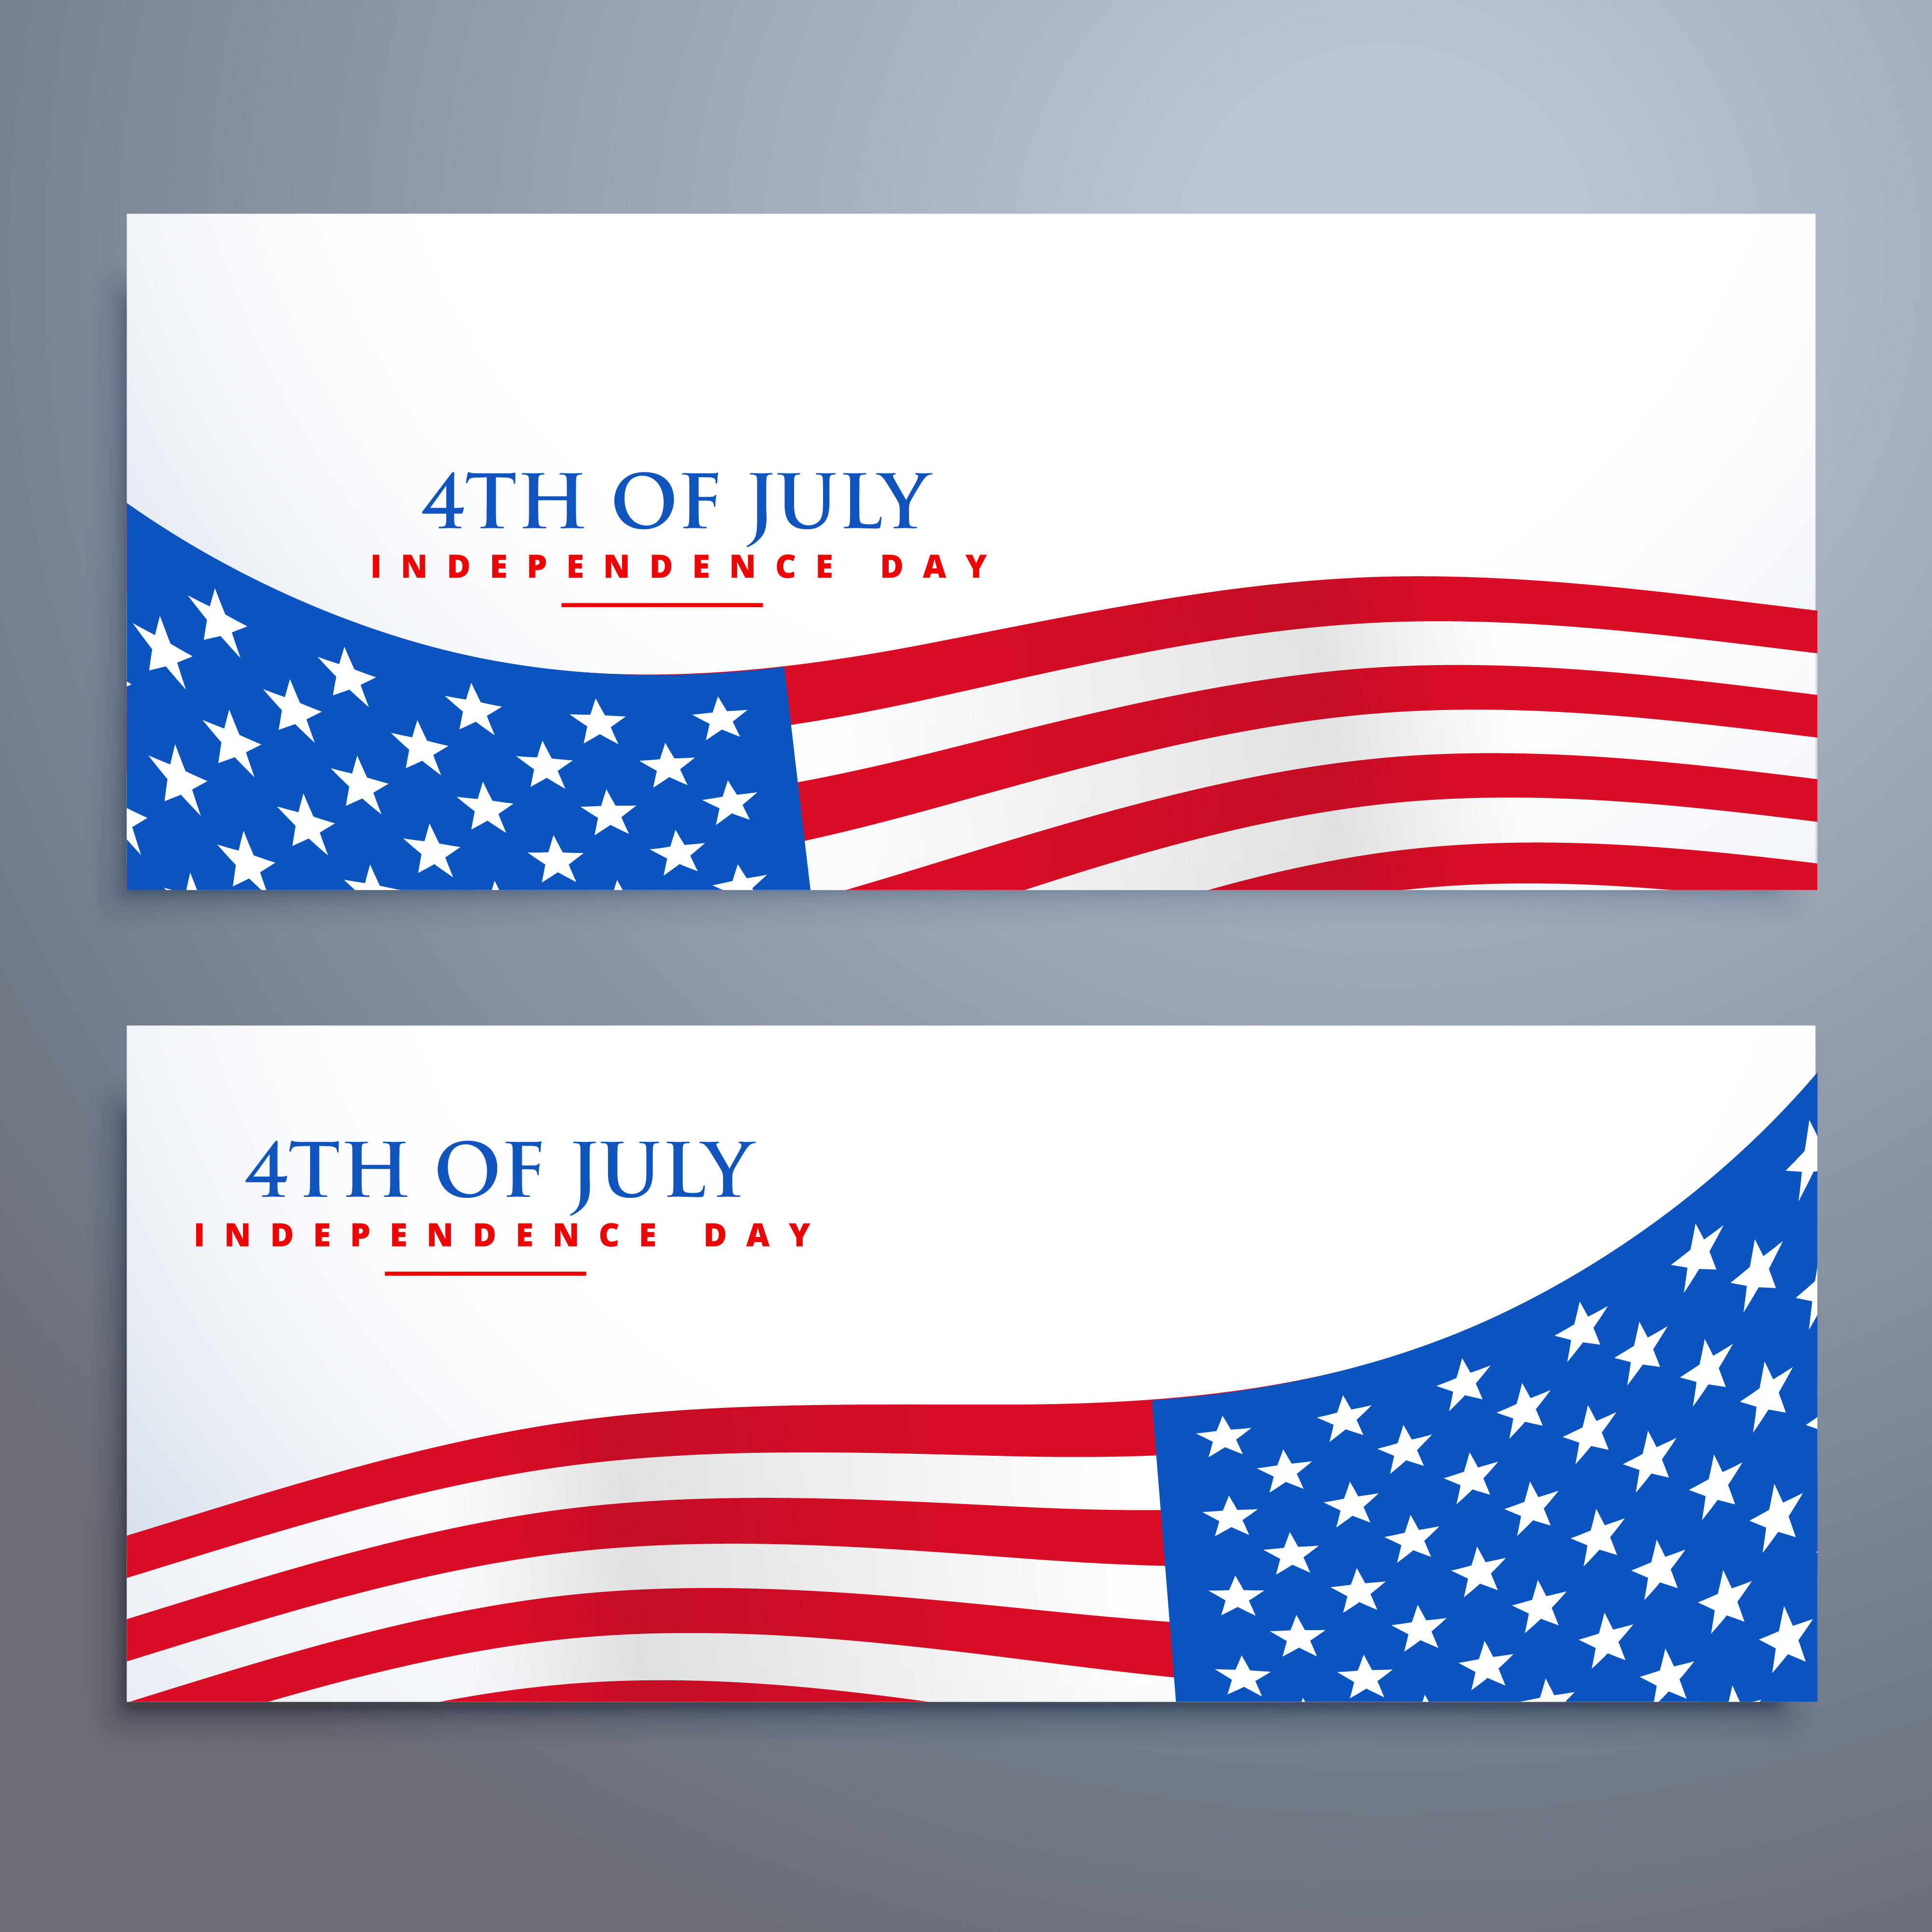 4th of july flag banners - Download Free Vector Art, Stock ...